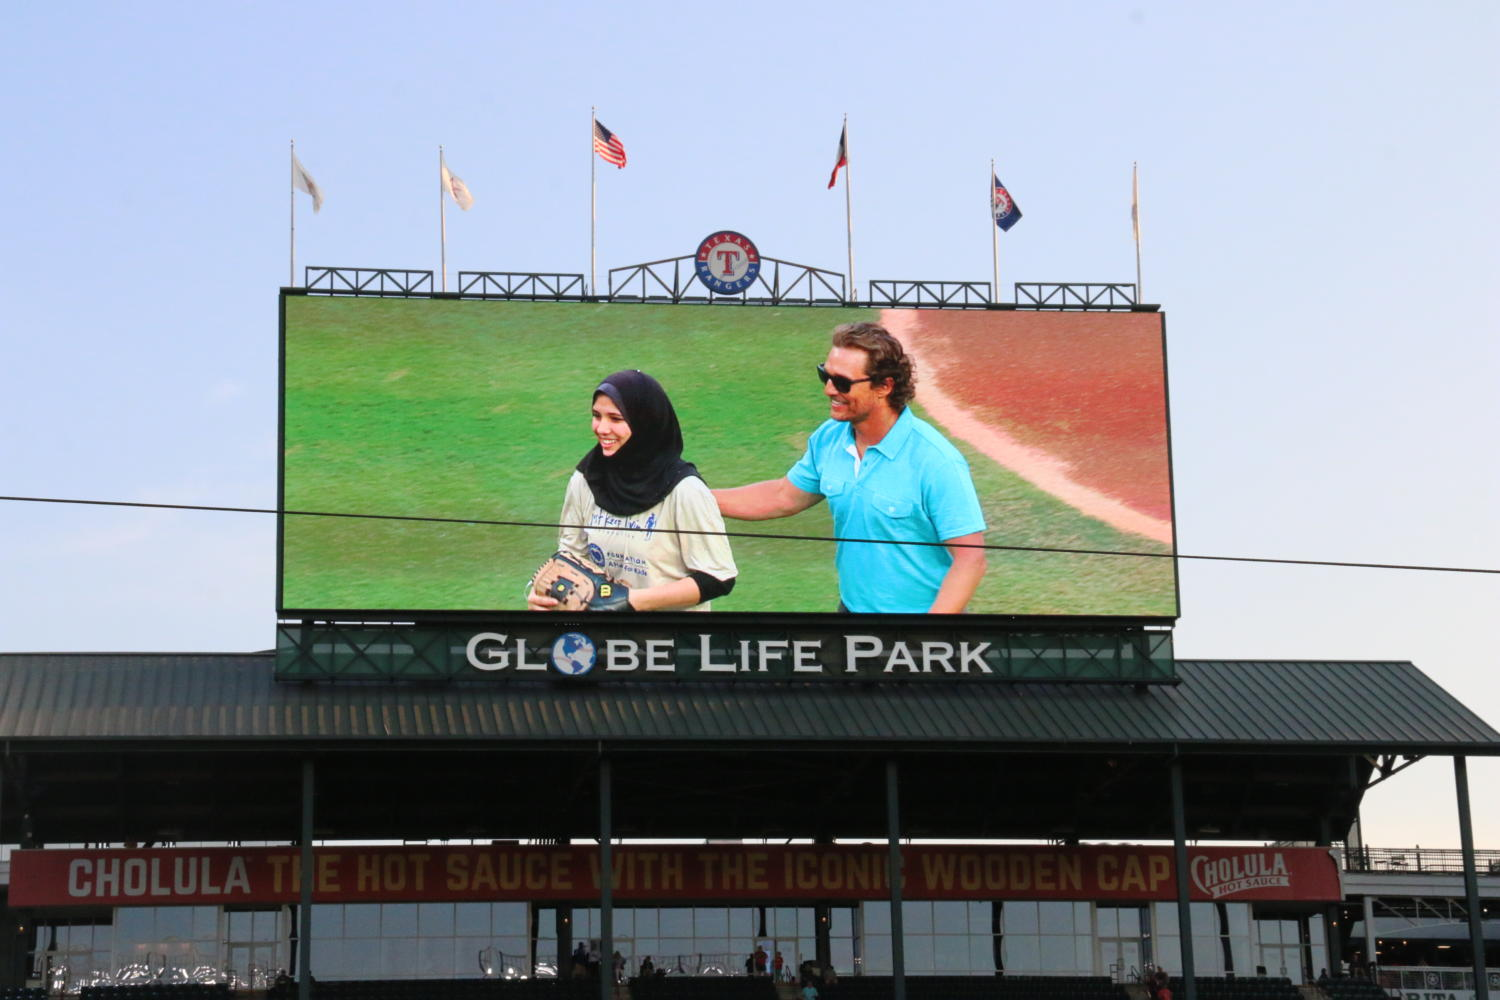 Senior Samiya Mohamed-Fawzy stands with actor Matthew McConaughey on the pitching mound before her pitch.